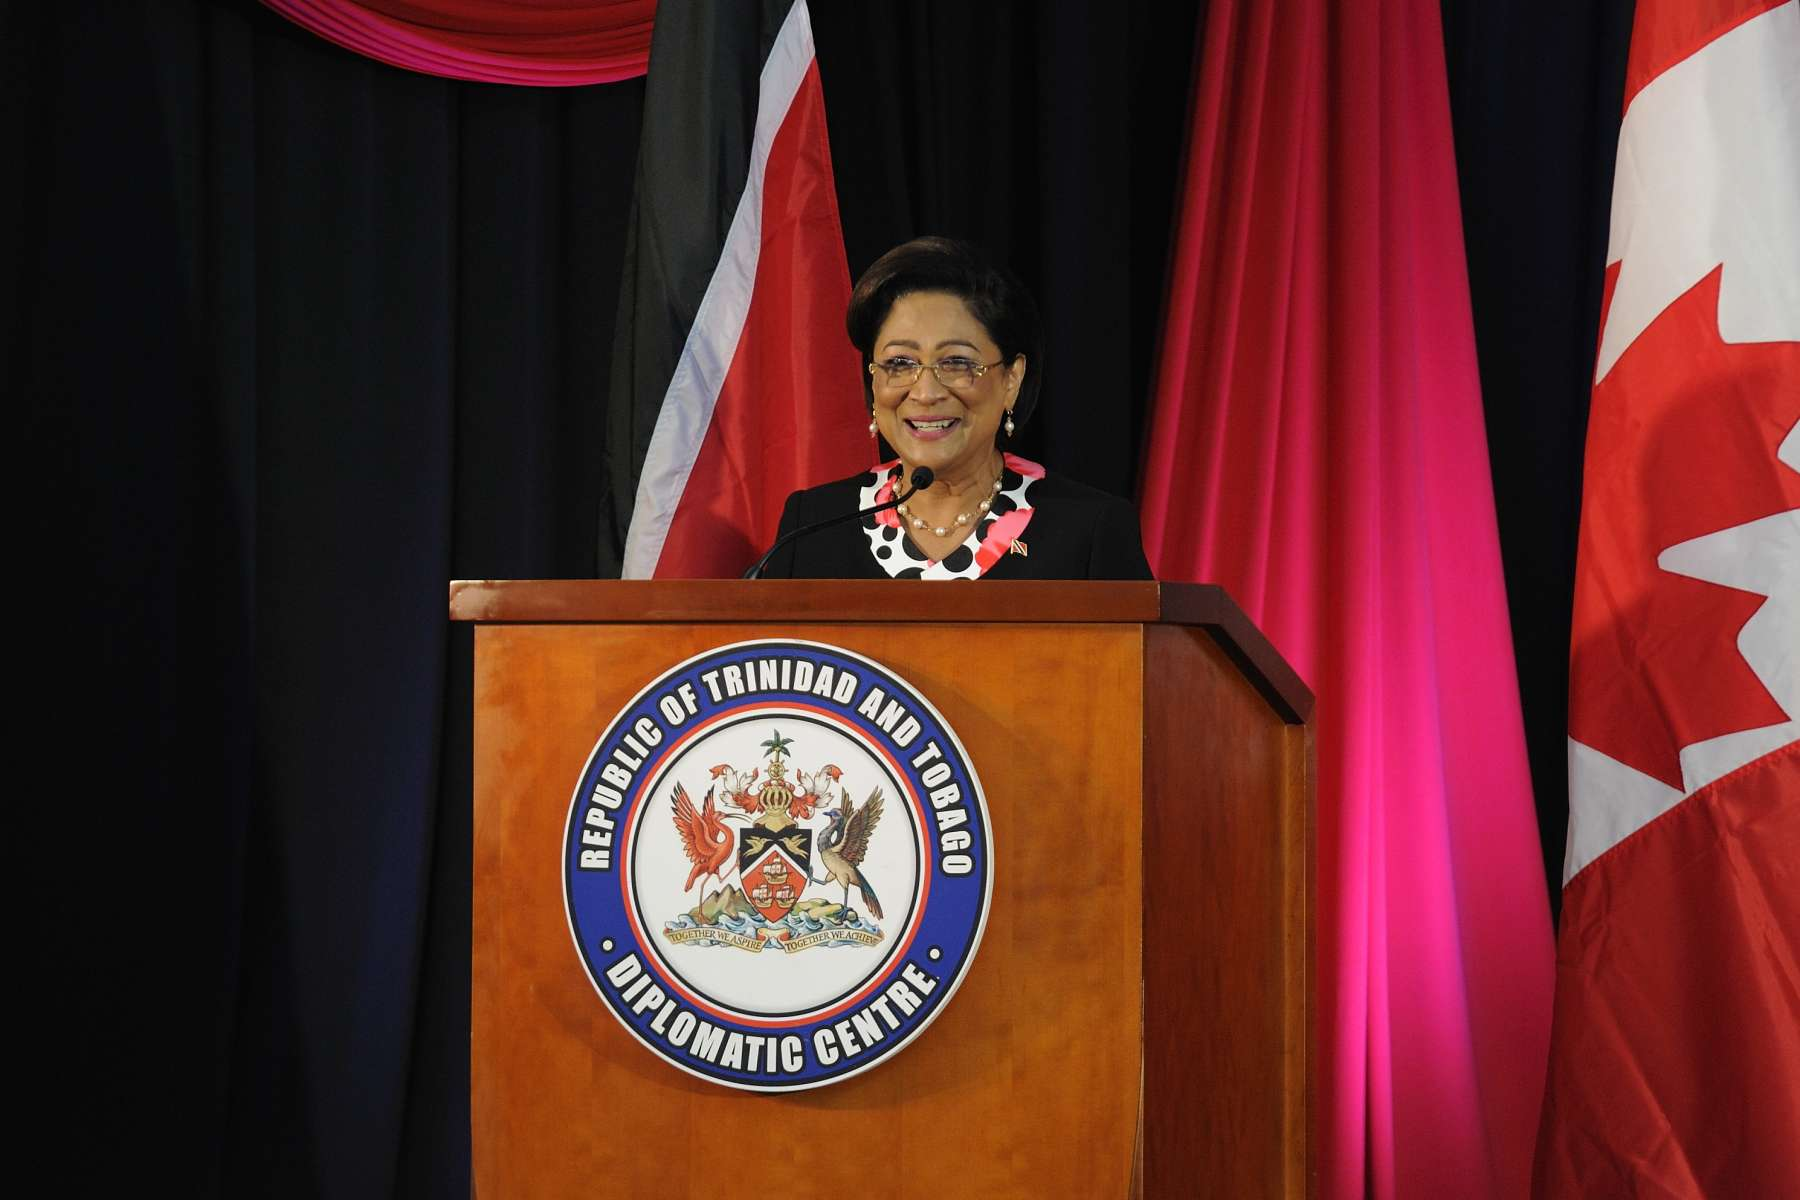 The Honourable Kamla Persad-Bissessar, Prime Minister of the Republic of Trinidad and Tobago, also delivered remarks...